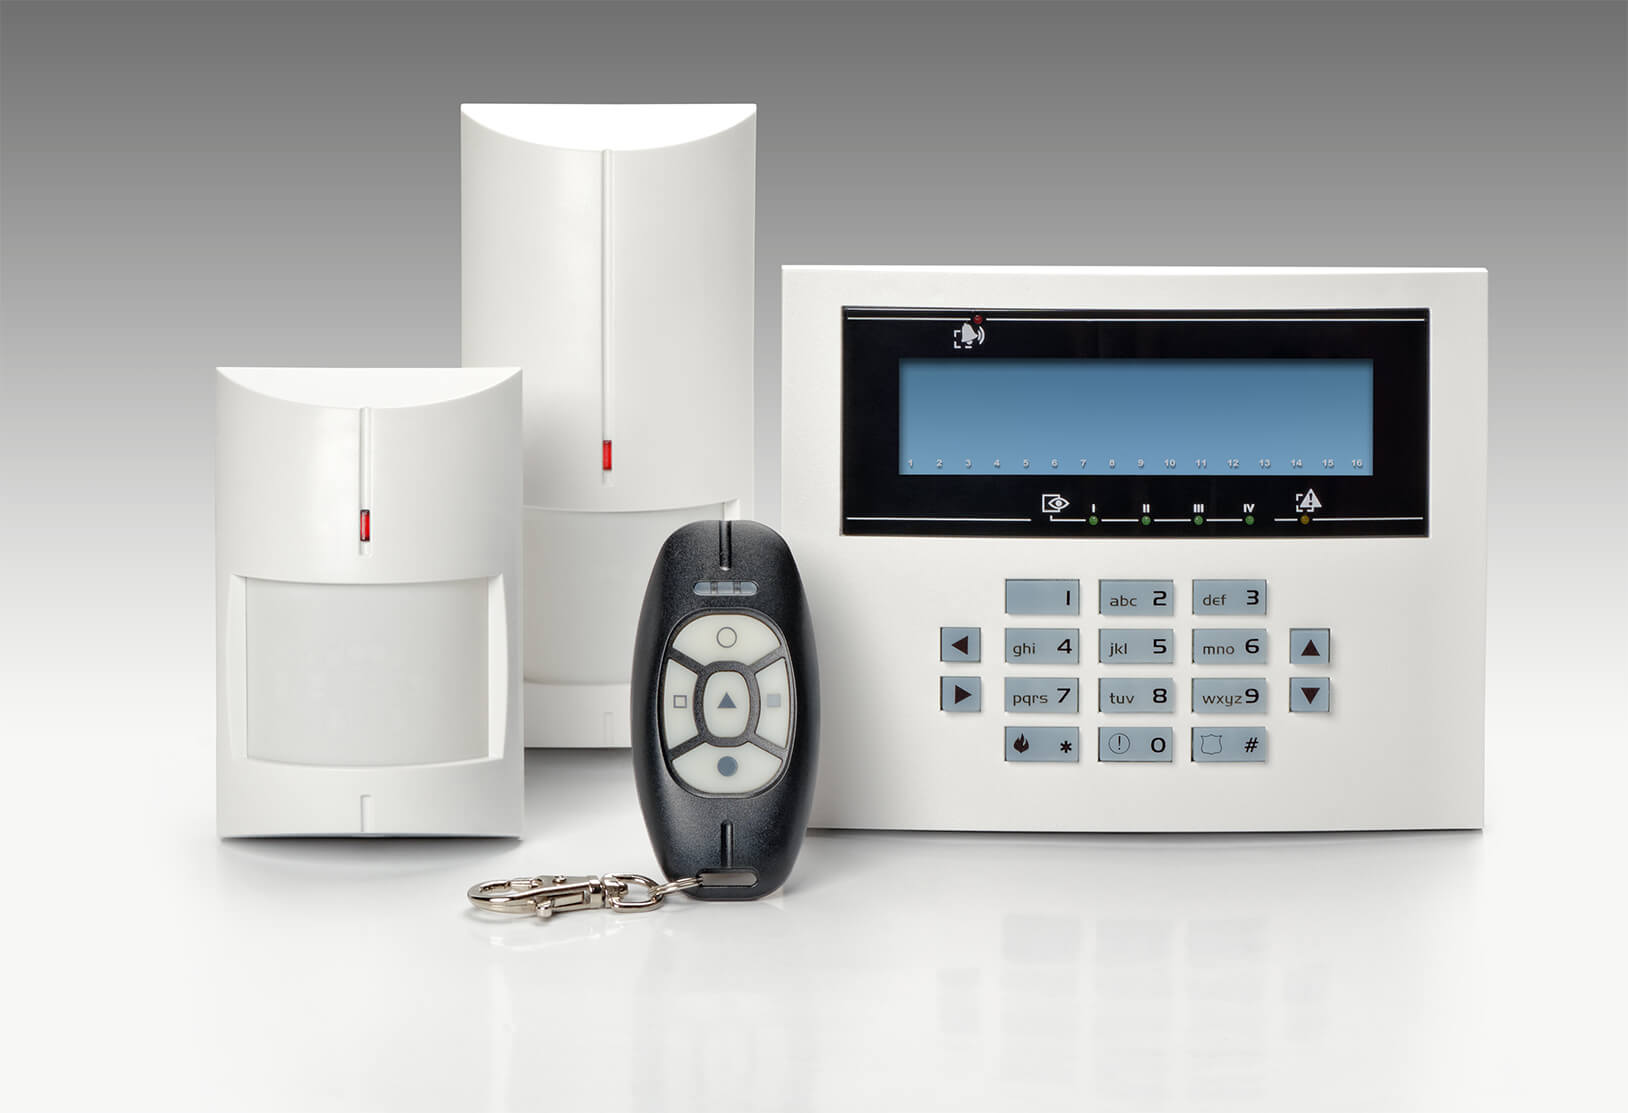 Burglar Alarms Repair in Crystal Palace SE19 - Local Crystal Palace SE19 alarm engineers.Call 02078872244 - See cost/price for burglar alarm repair and book your alarm engineer. No Hidden charges,No Contracts, Book as you need.Engineers on demand.All alarm makes repaired.Same day service ability.